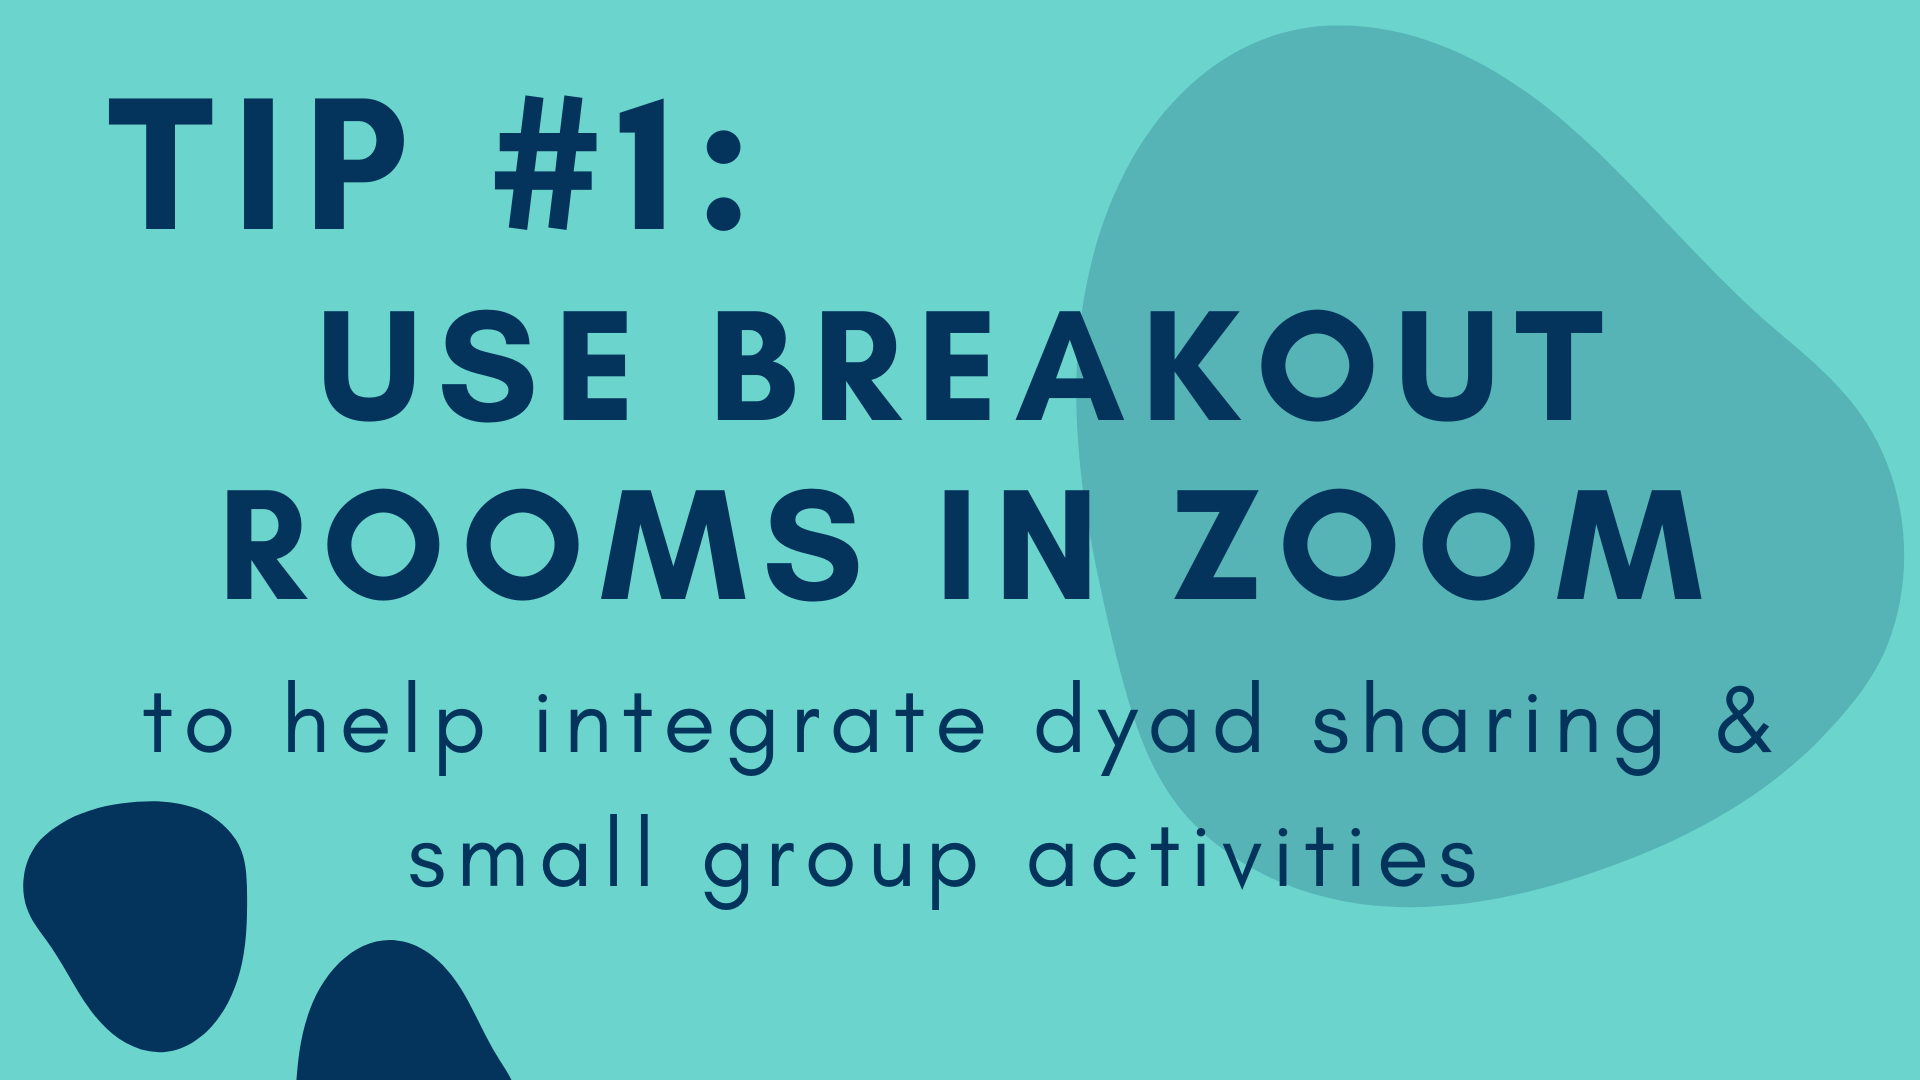 Text in graphic form: Tip #1 Use Breakout Rooms in Zoom to help integrate dyad sharing & small group activities